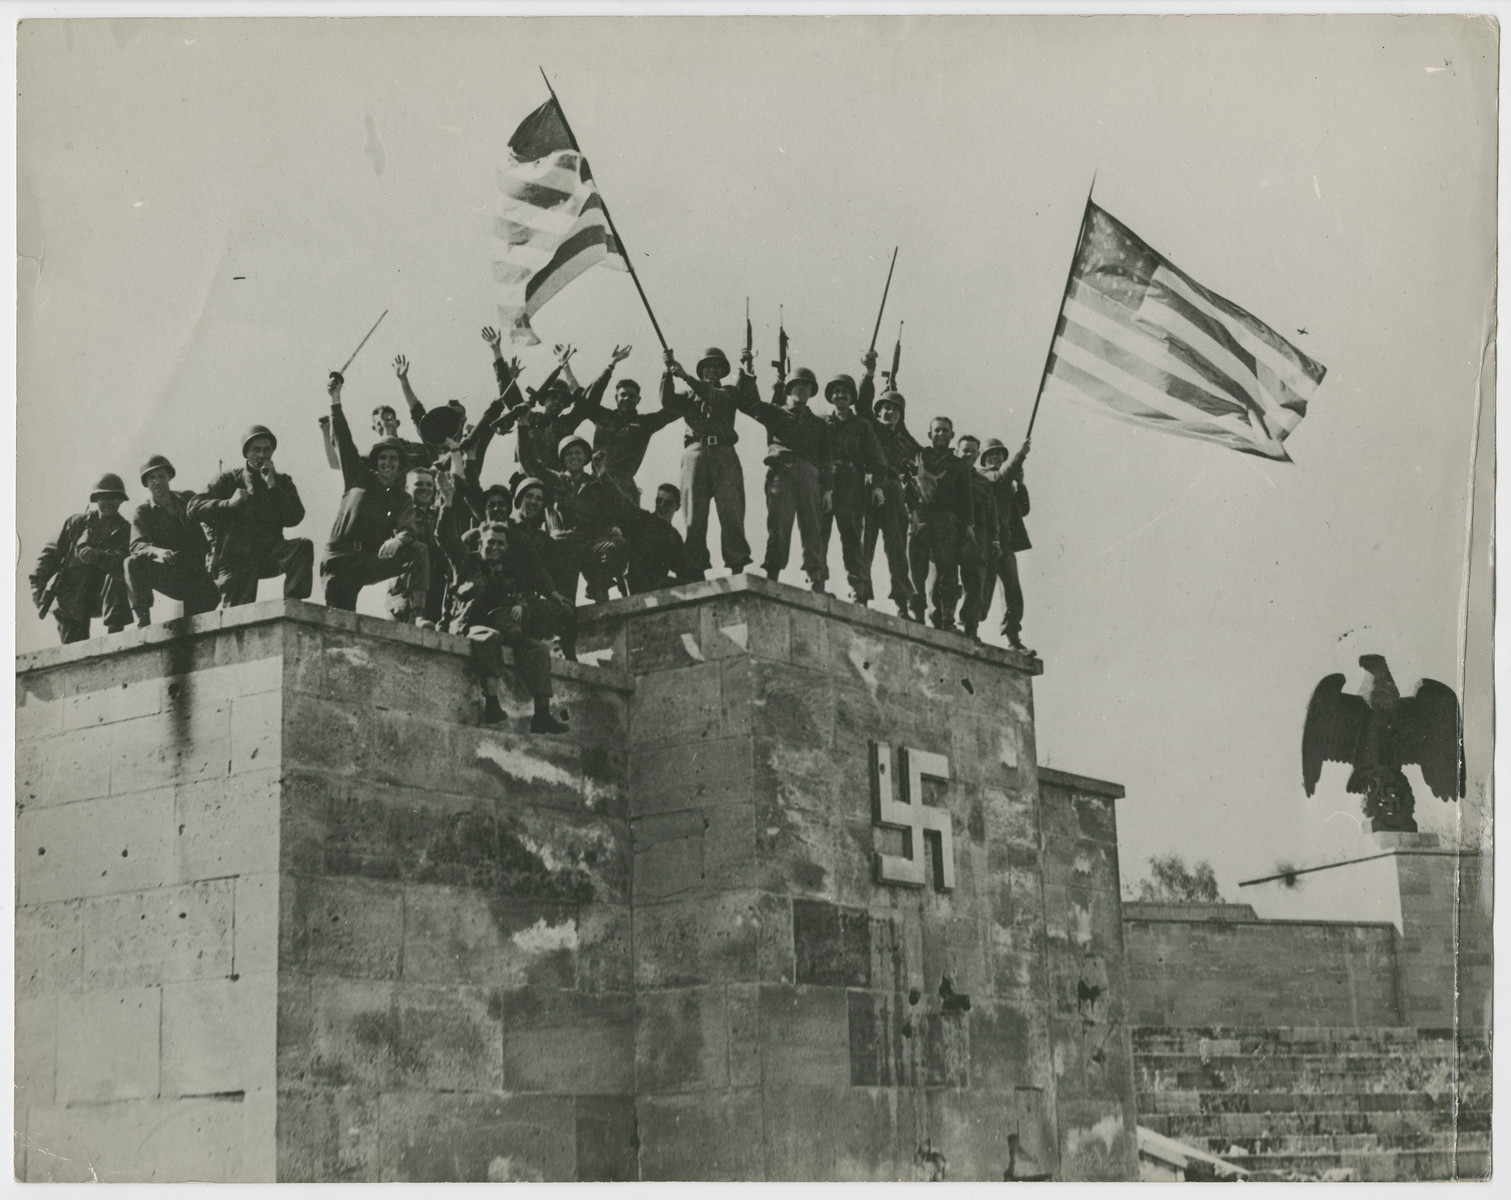 """Troops of the 45th Division, Seventh U.S. Army wave American flags in the Nuremberg stadium.  Original caption reads:  """"U.S. Soldiers Capture Nuremberg.  Troops of the 45th Division, Seventh U.S. Army, wave battle-worn American Flags from the dais of the Luitpold Arena in Nuremberg, Germany, after capture of the shrine city of the Nazi Party April 20, 1945.  This is the very spot from which Hitler, Goering, Gobbels and Hiimmler harangued their massive Nazi audiences at party festivals in the defiant prewar days.  After the U.S. forces had crushed the last flicker of enemy resistence in the city, masses of liberated foreign slave workers streamed into the huge stadium""""."""